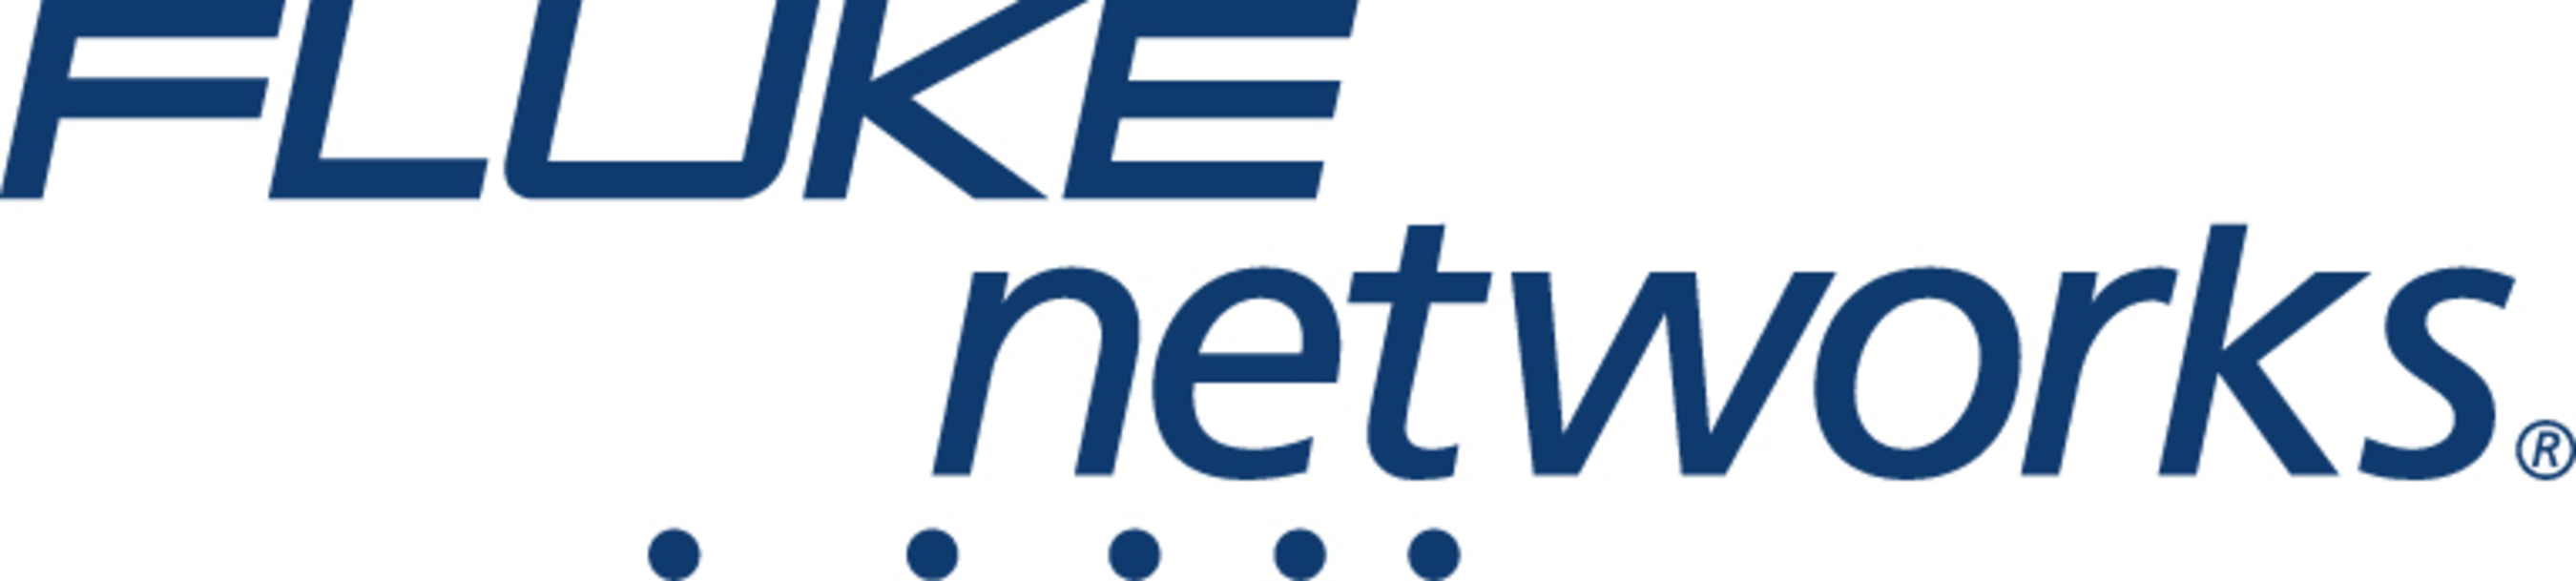 NETSCOUT's Fluke Networks Enterprise Solutions Honored with 2015 Cloud Computing Award for TruView Live